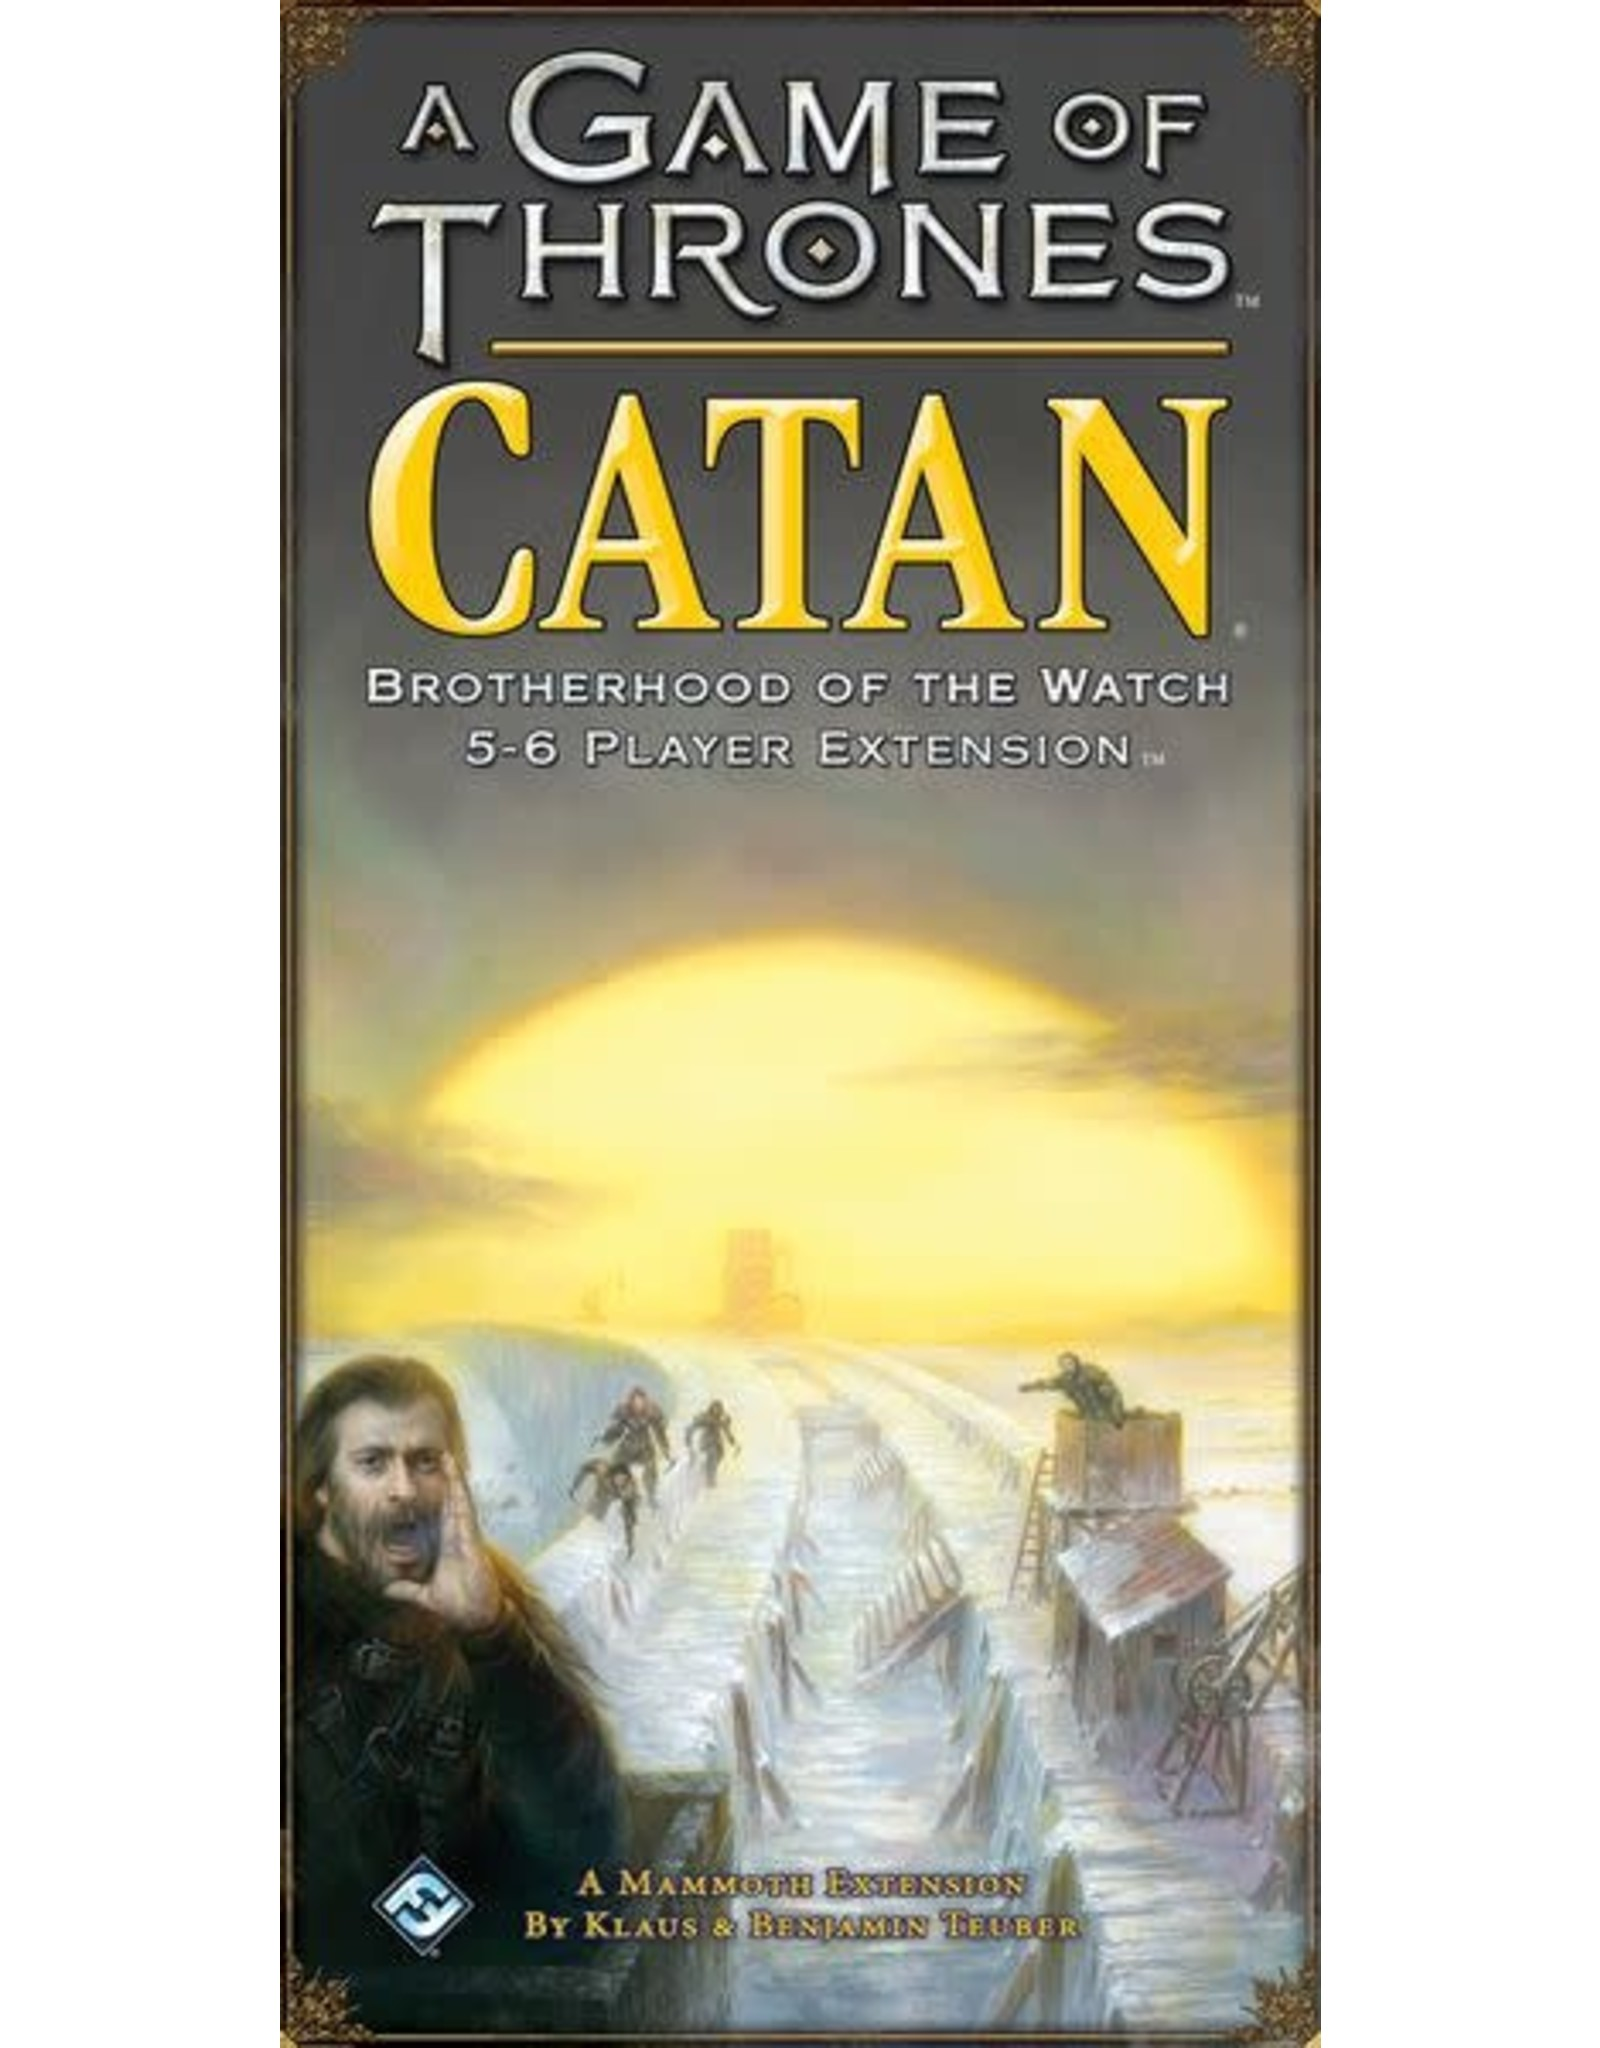 Game of Thrones Catan 5-6 Player Extension